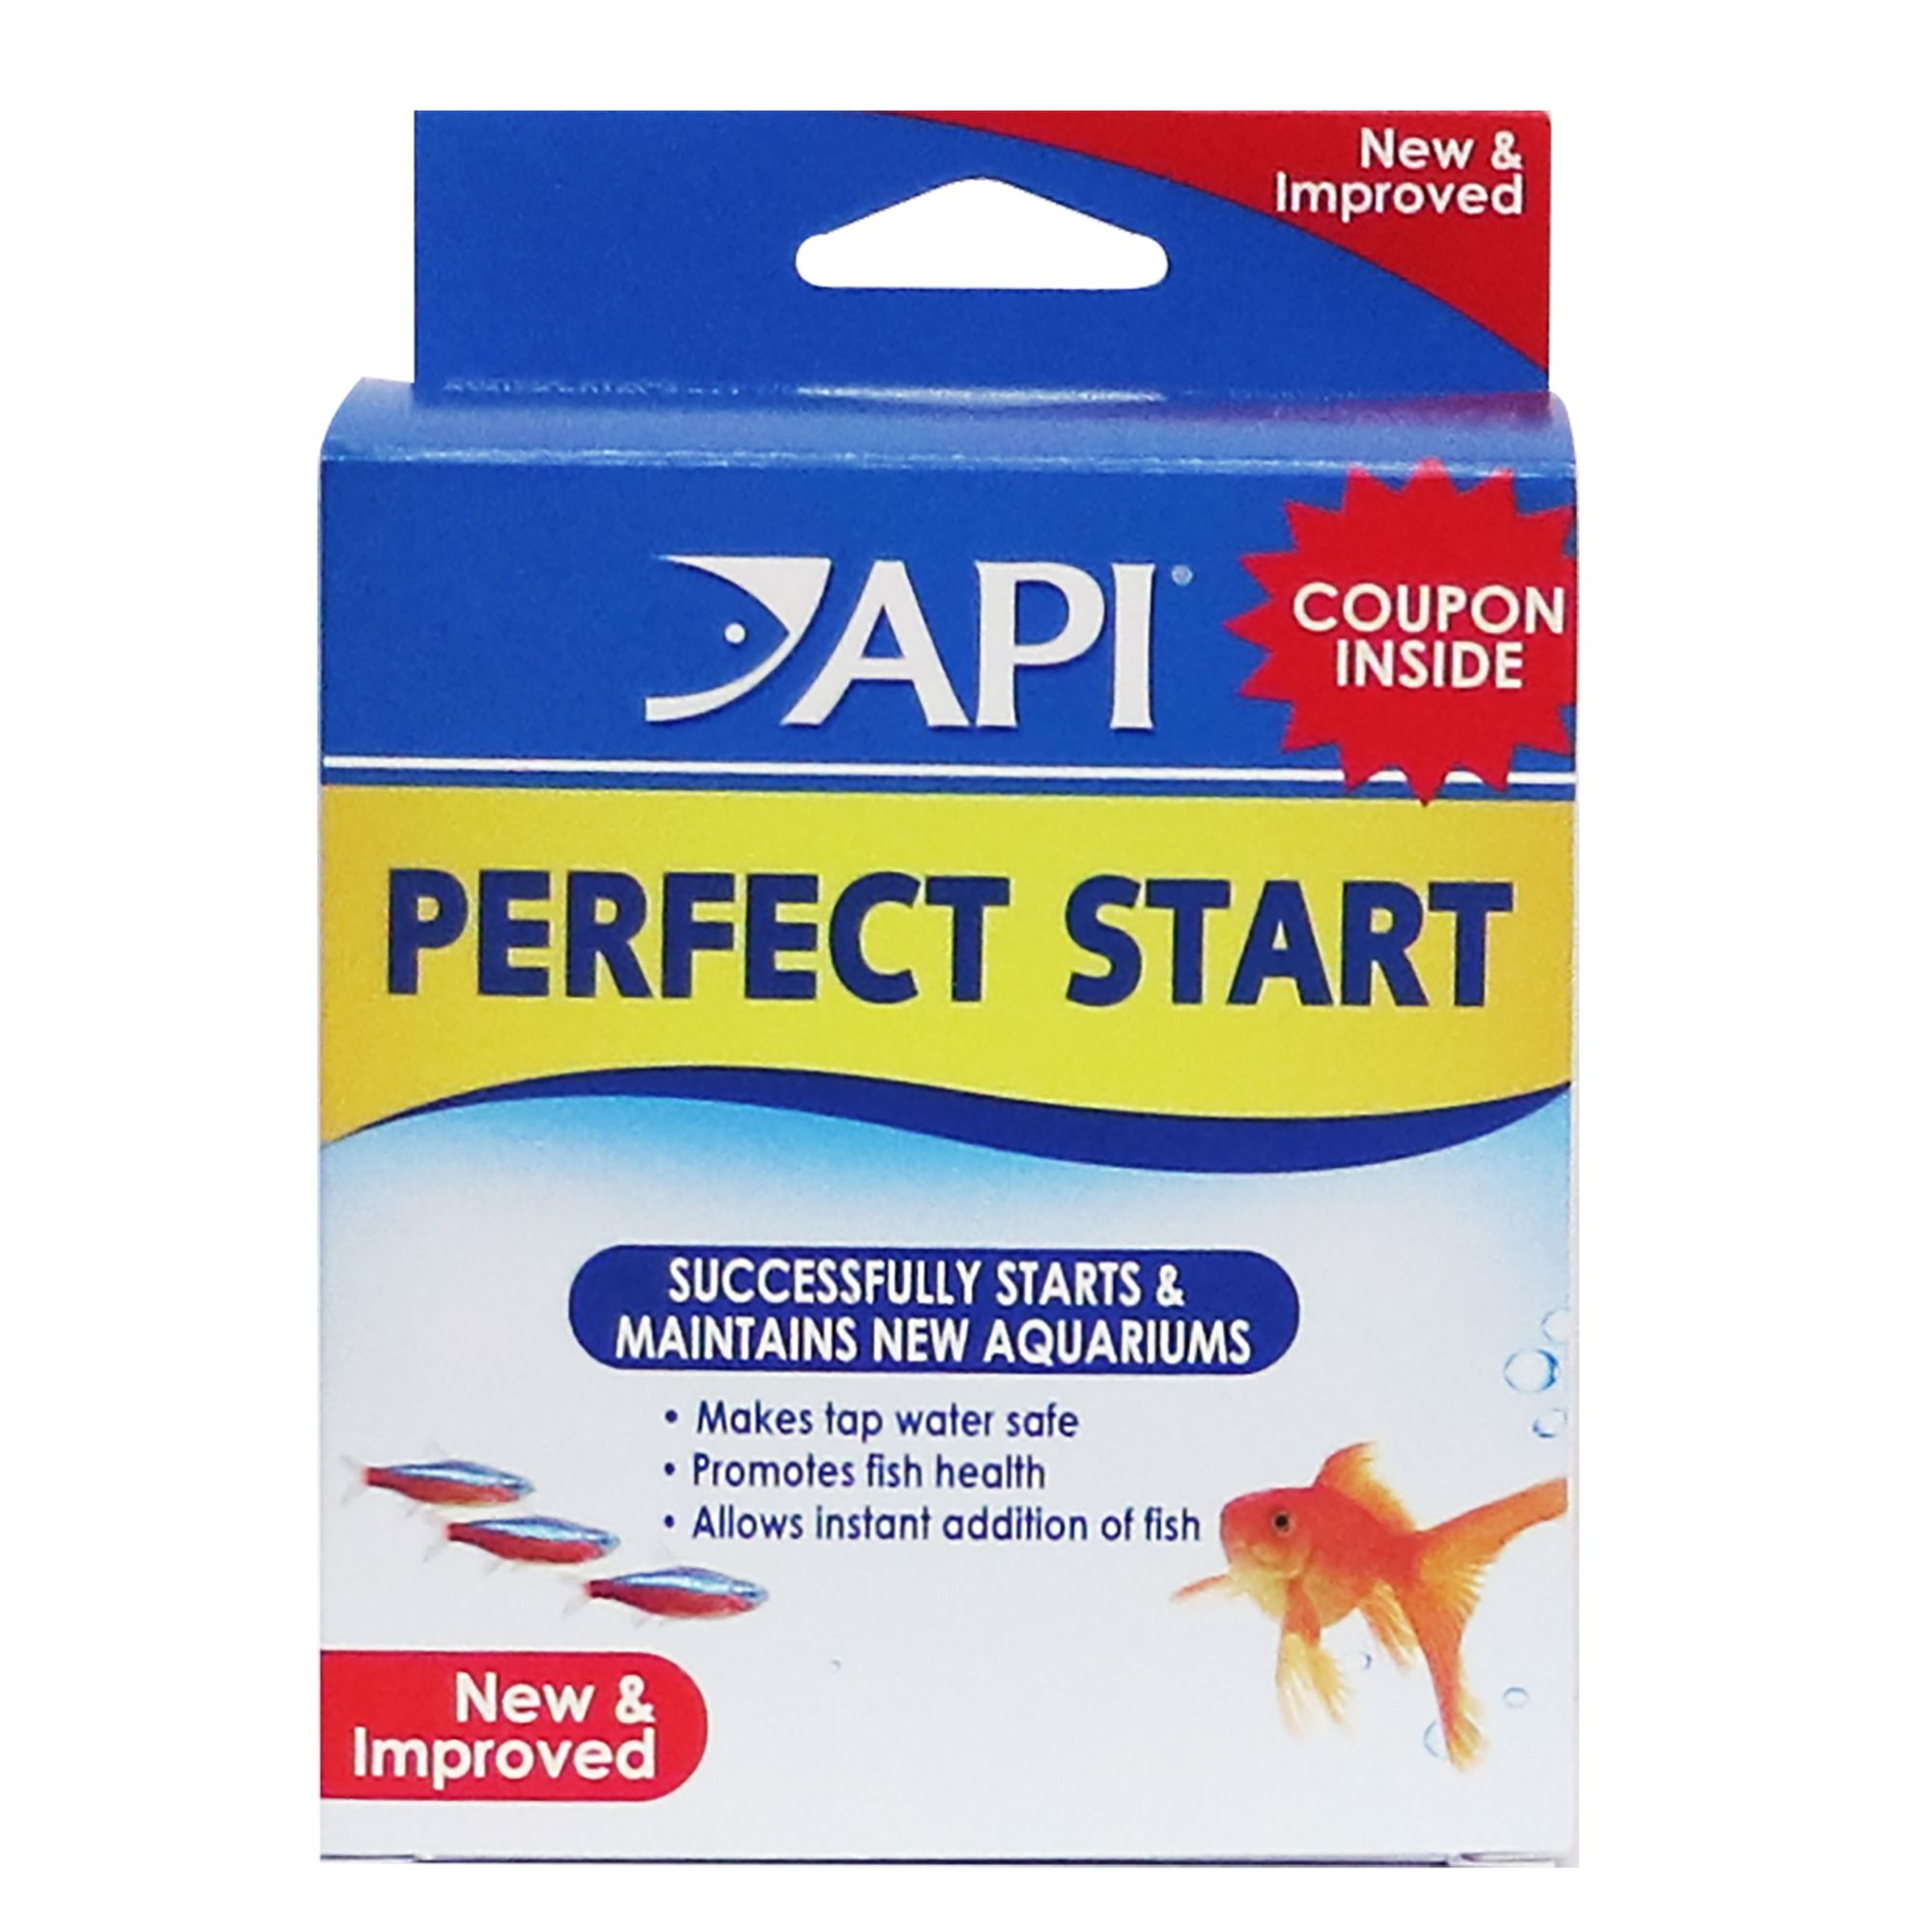 Api Perfect Start size: 3 Count 5225063